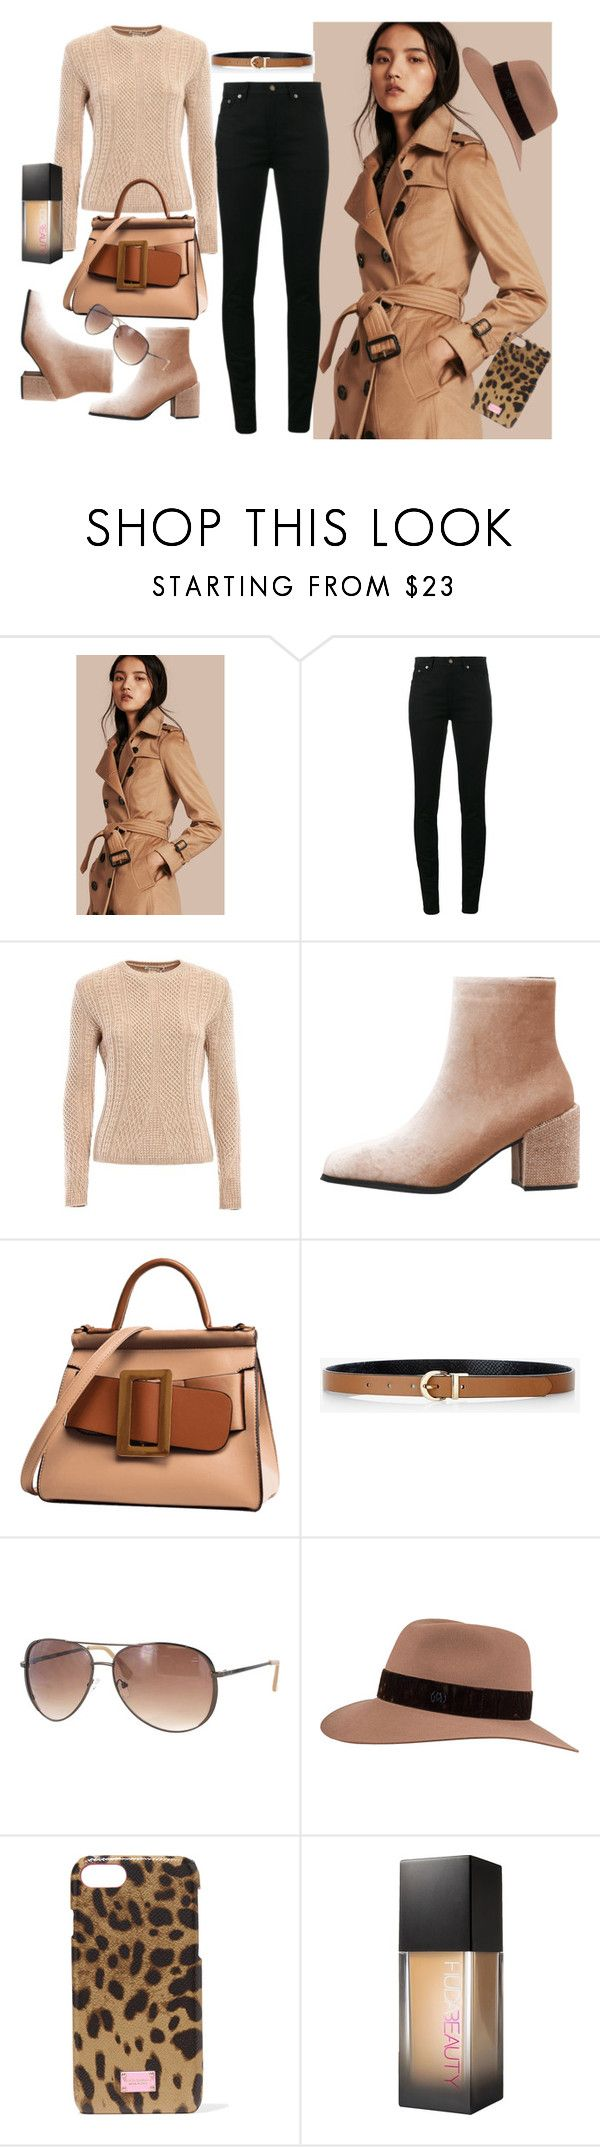 """conjunto492"" by lauracabrera-2 ❤ liked on Polyvore featuring Burberry, Yves Saint Laurent, MaxMara, Express, Kay Unger New York, Maison Michel, Dolce&Gabbana and Huda Beauty"